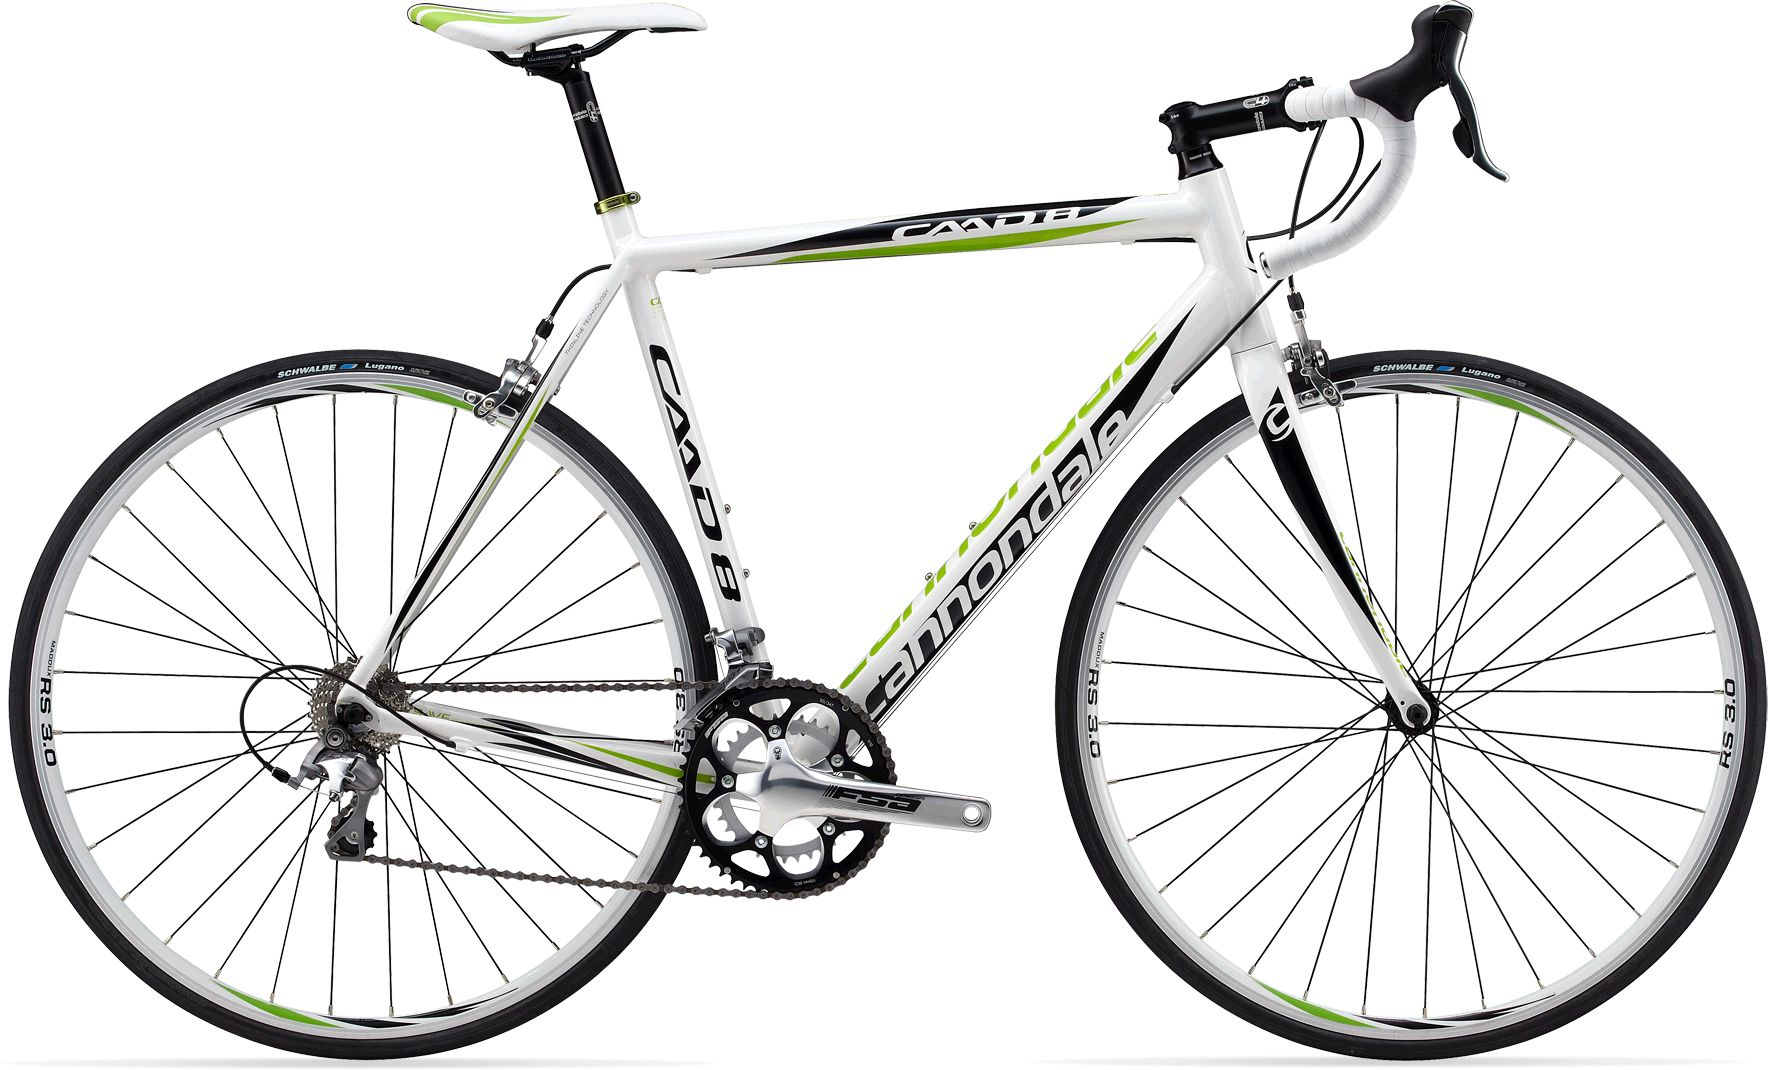 377c37e74f6 Cannondale CAAD8 6 Tiagra 2014 review - The Bike List